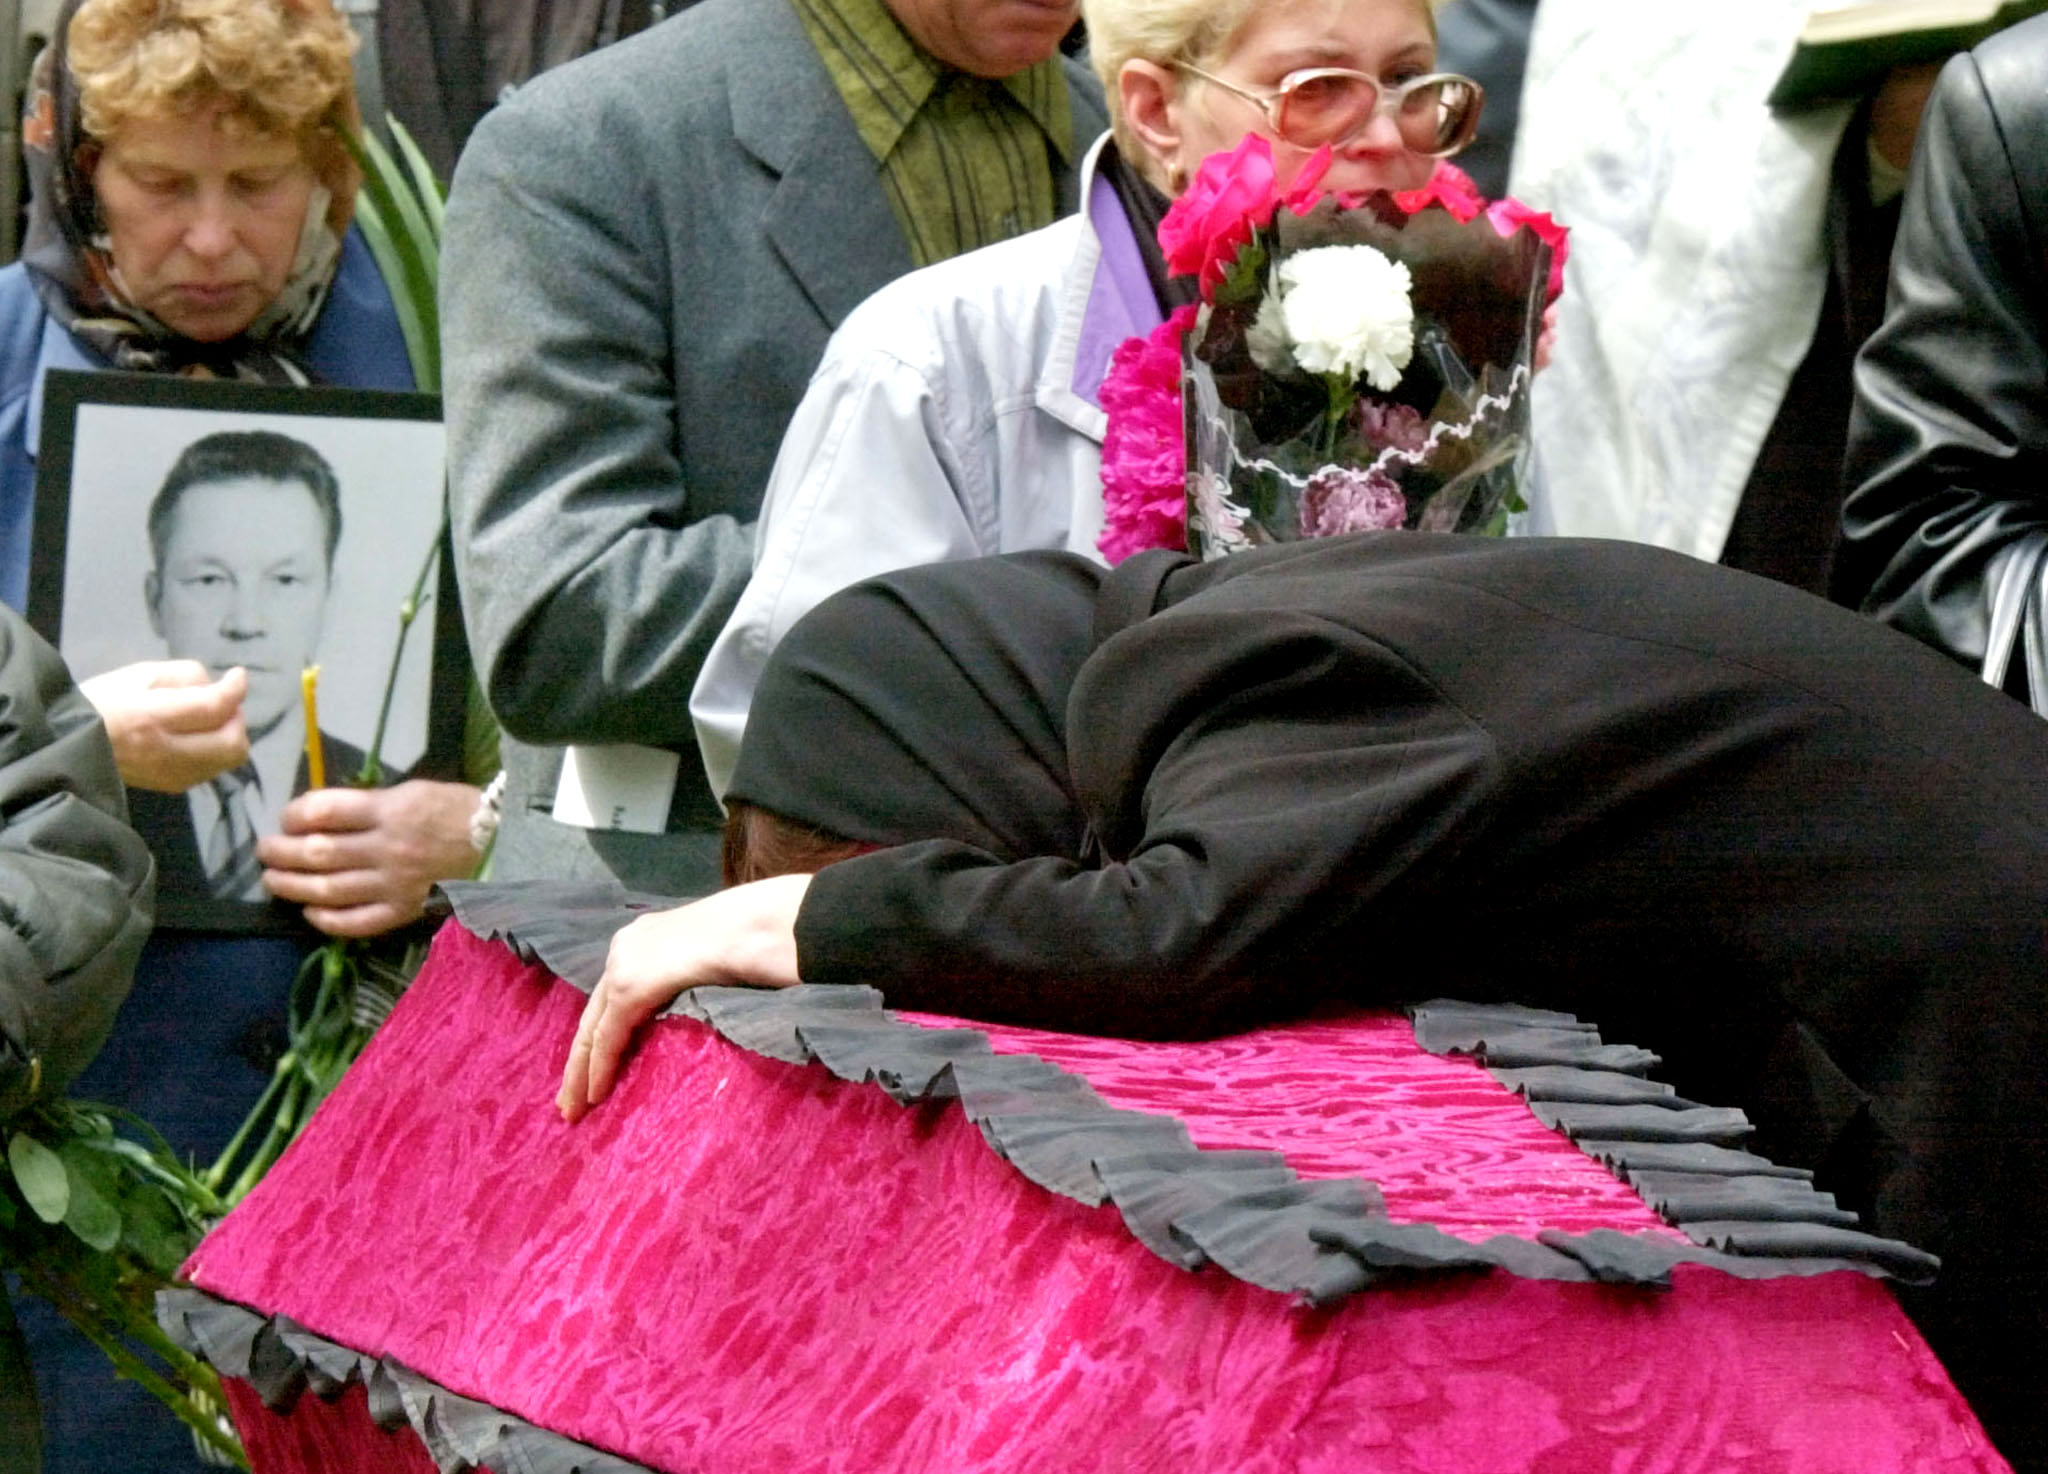 A relative moans over the coffin with the body of a Tu-154 plane crash victim, July 9, 2001 in Yekaterinburg. ©REUTERS